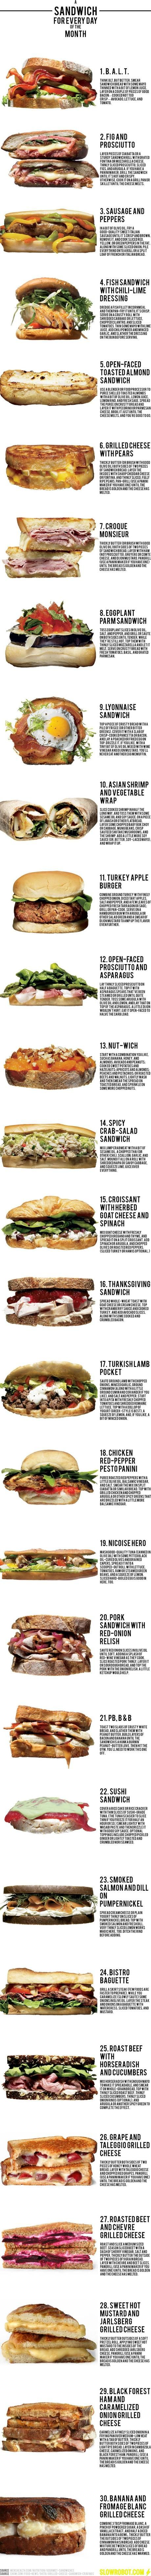 I feel like one just by looking at it. Infographic about how to make 30 different sandwiches